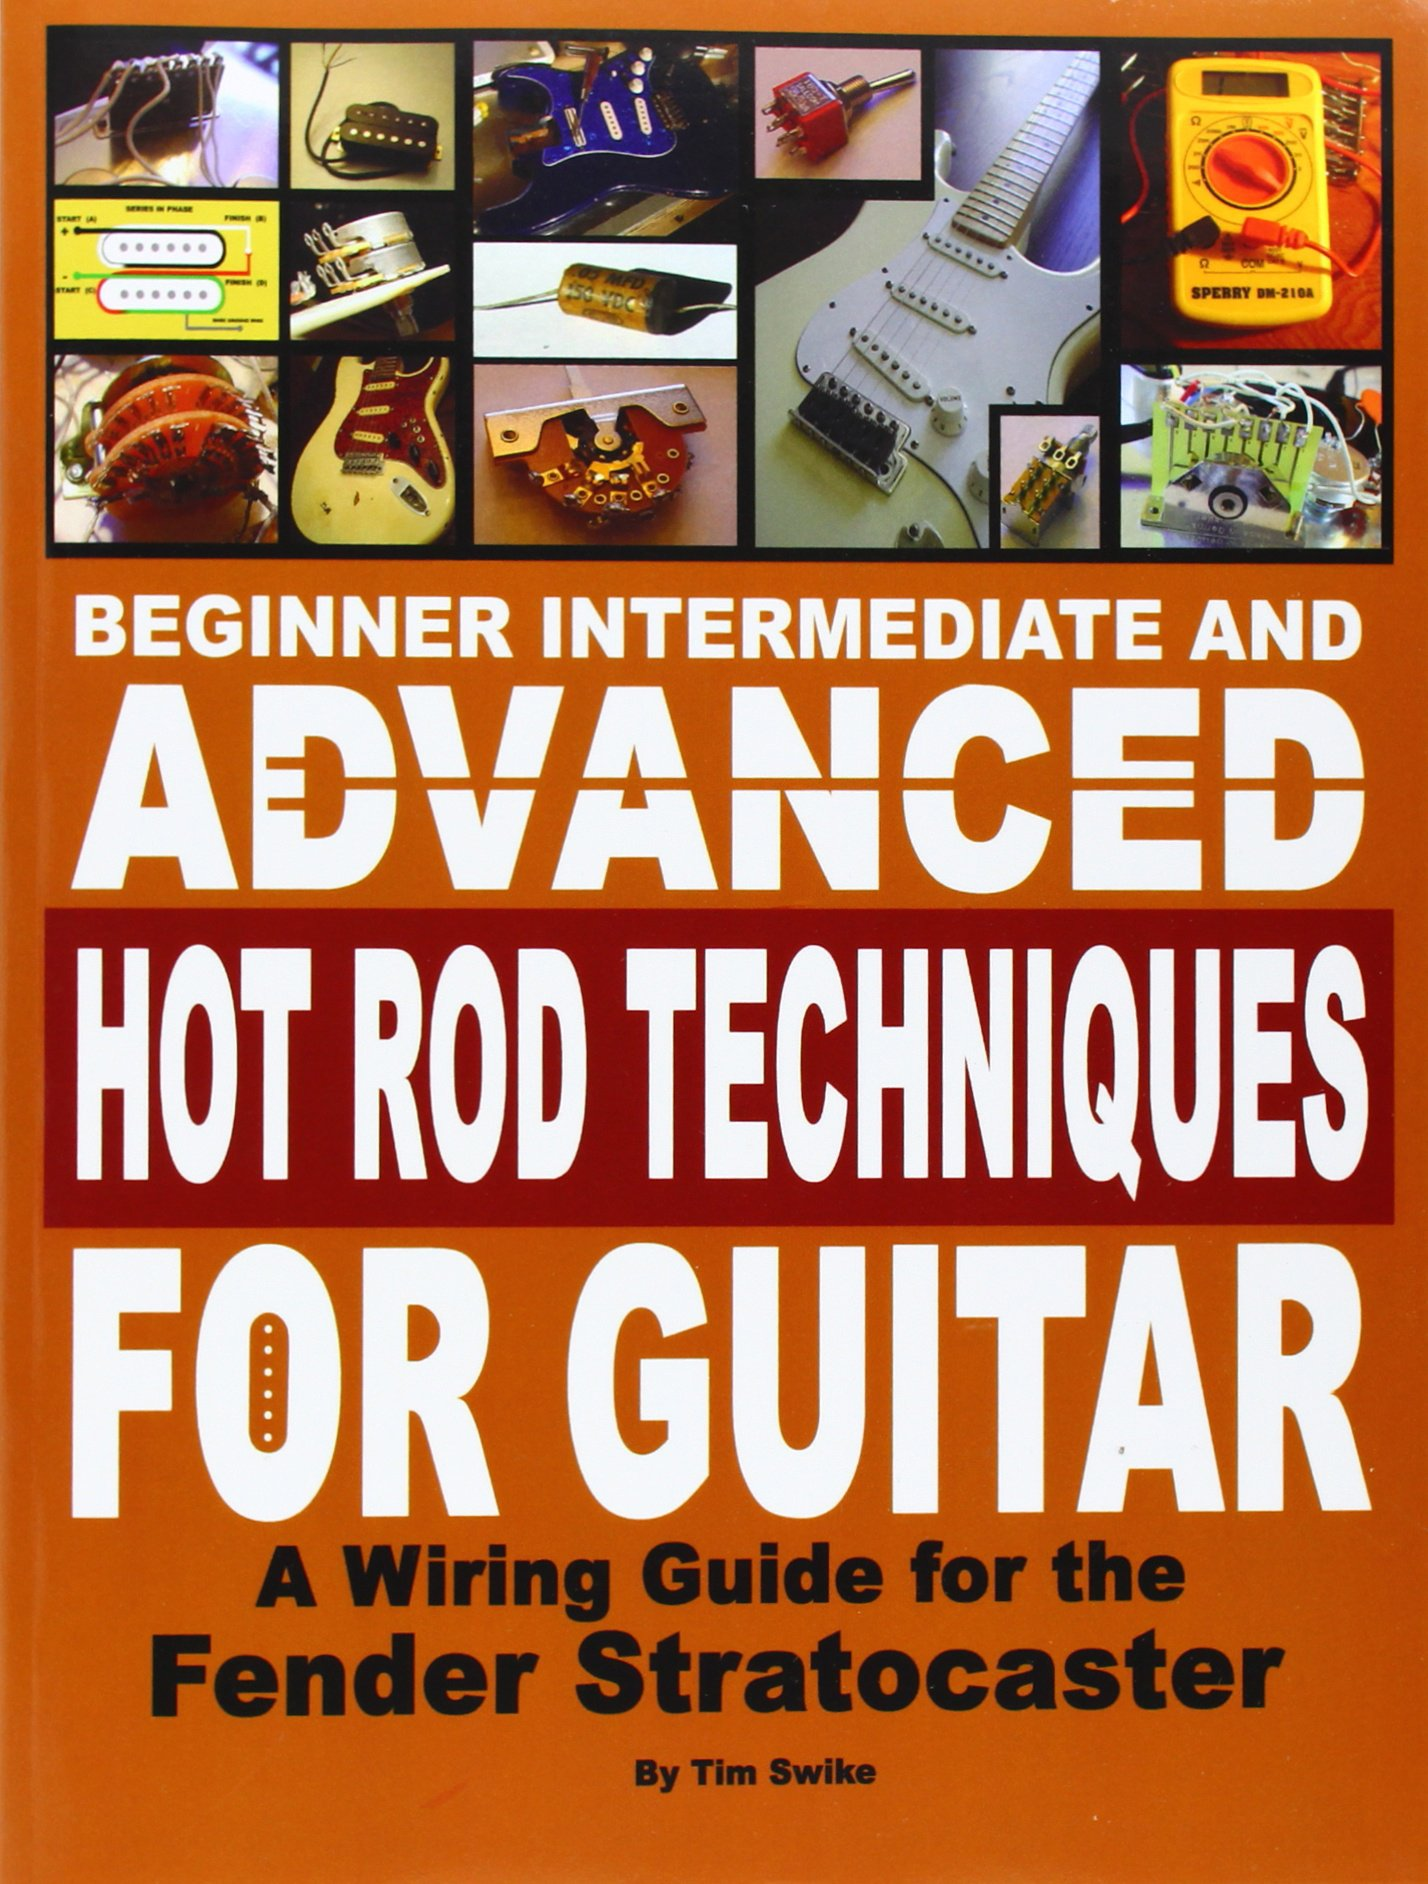 Beginner Intermediate And Advanced Hot Rod Techniques For Guitar A Varitone Switch Wiring Diagram Fender Stratocaster Guide Tim Swike 9780615218137 Books